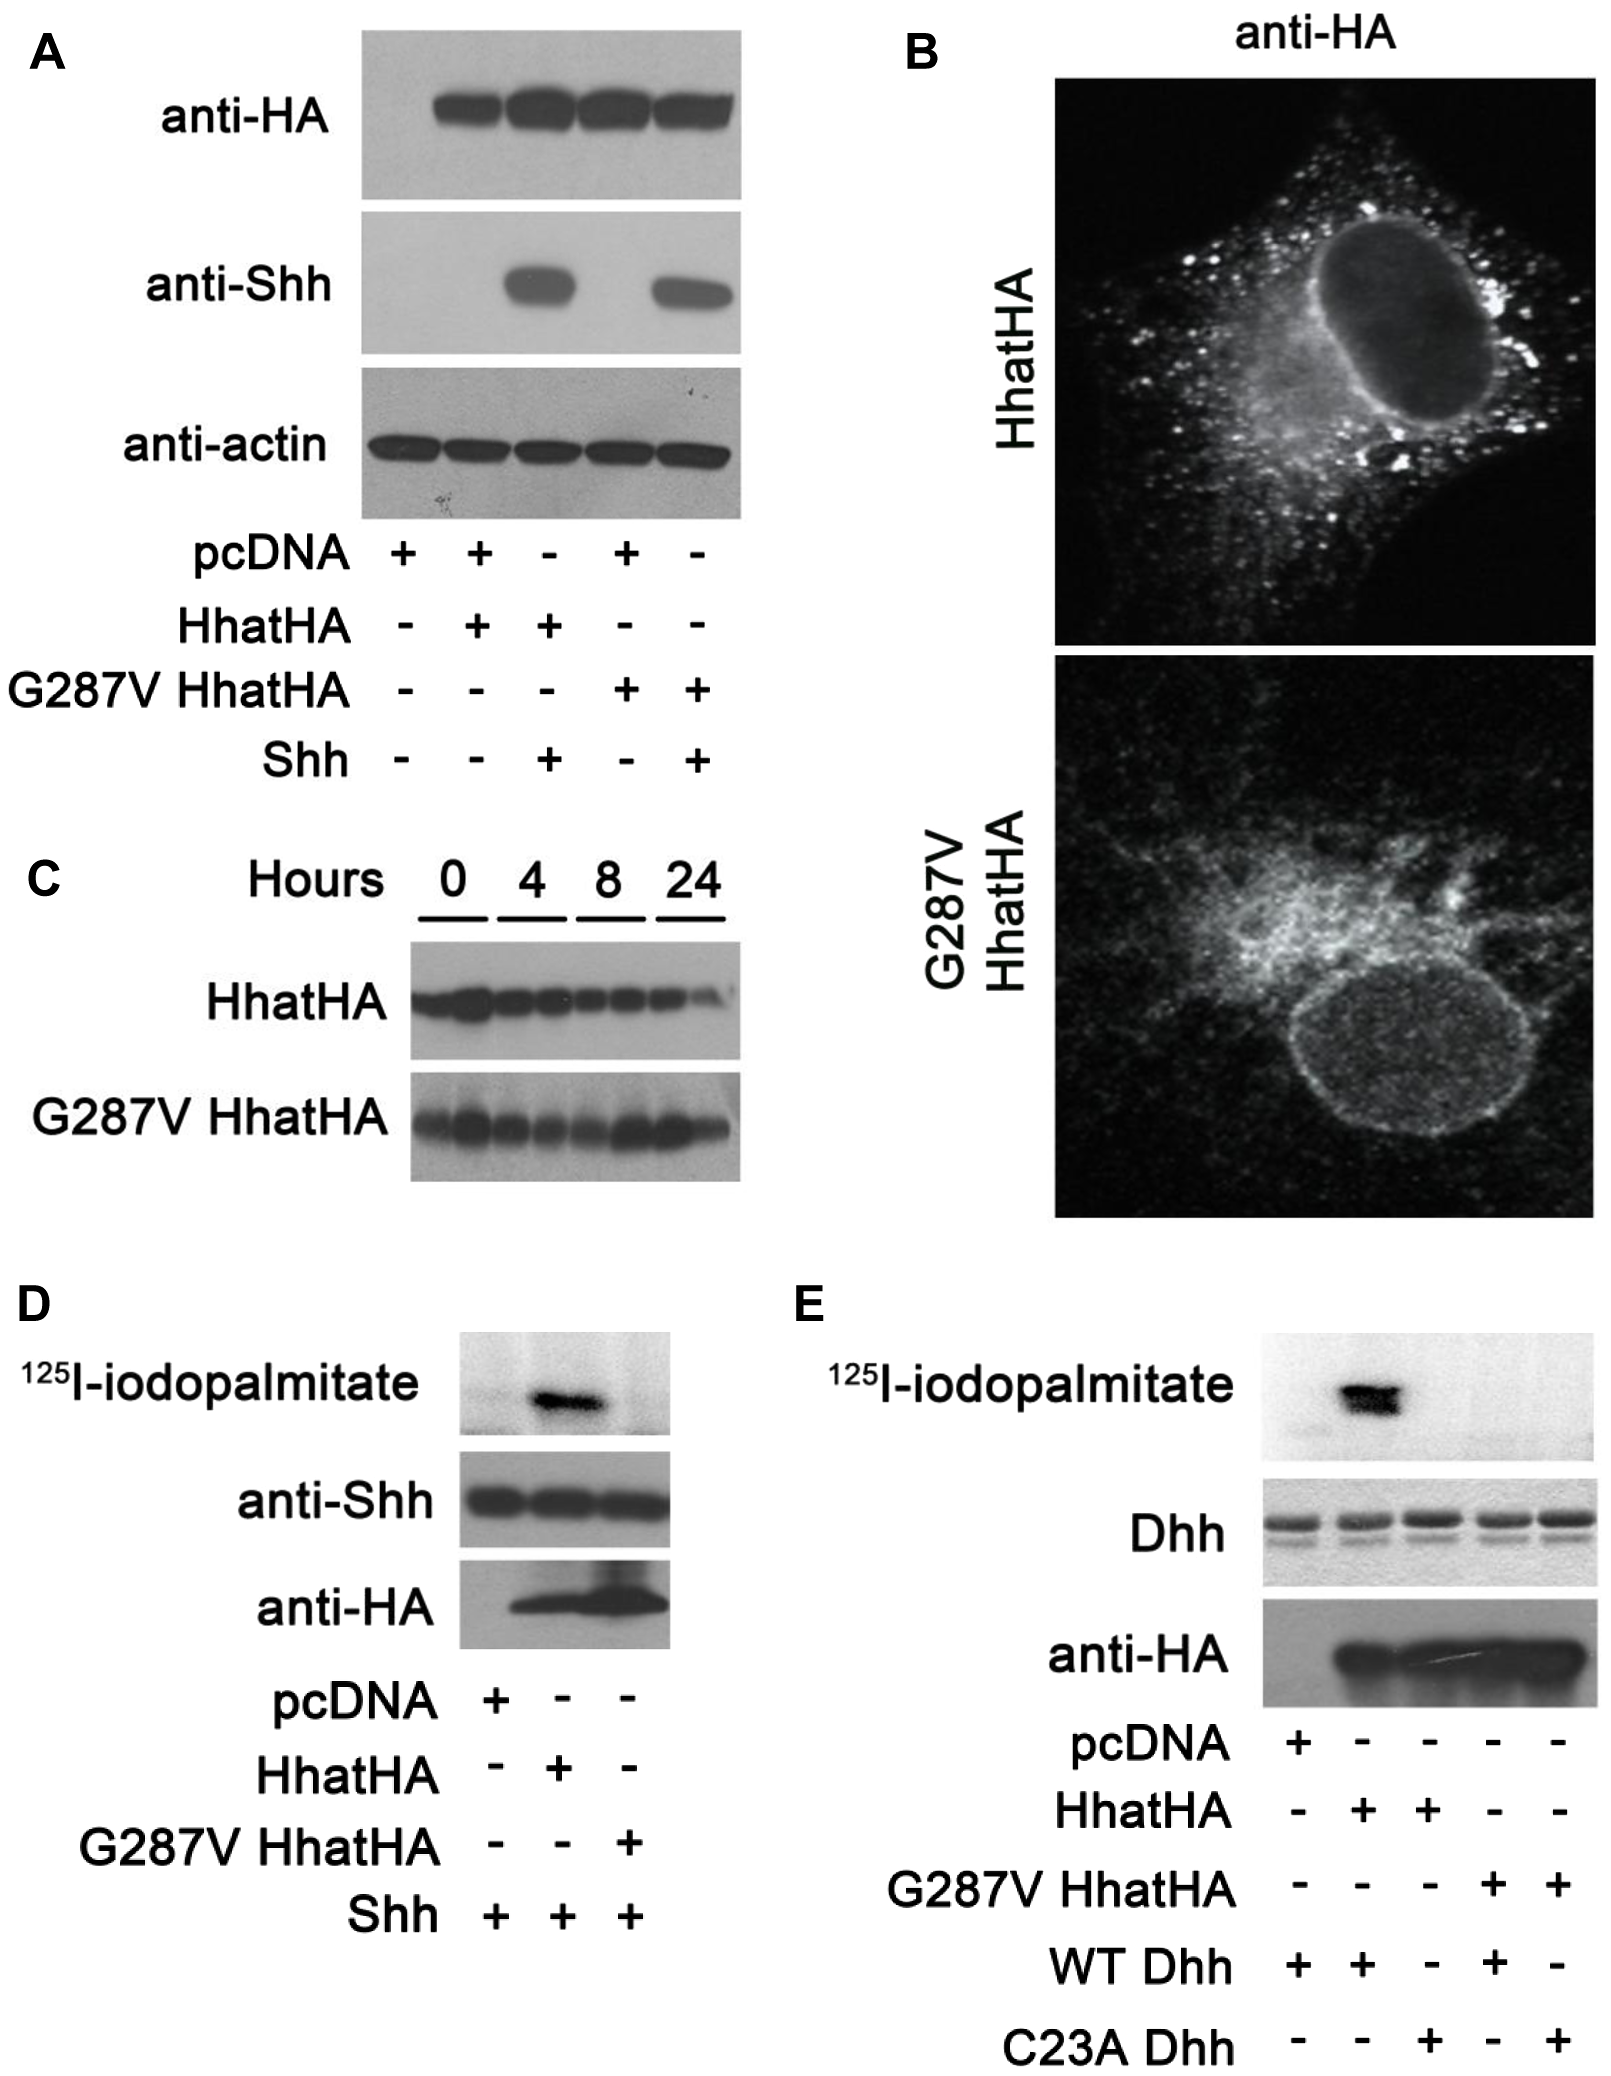 G287V mutation results in loss of HHAT activity.